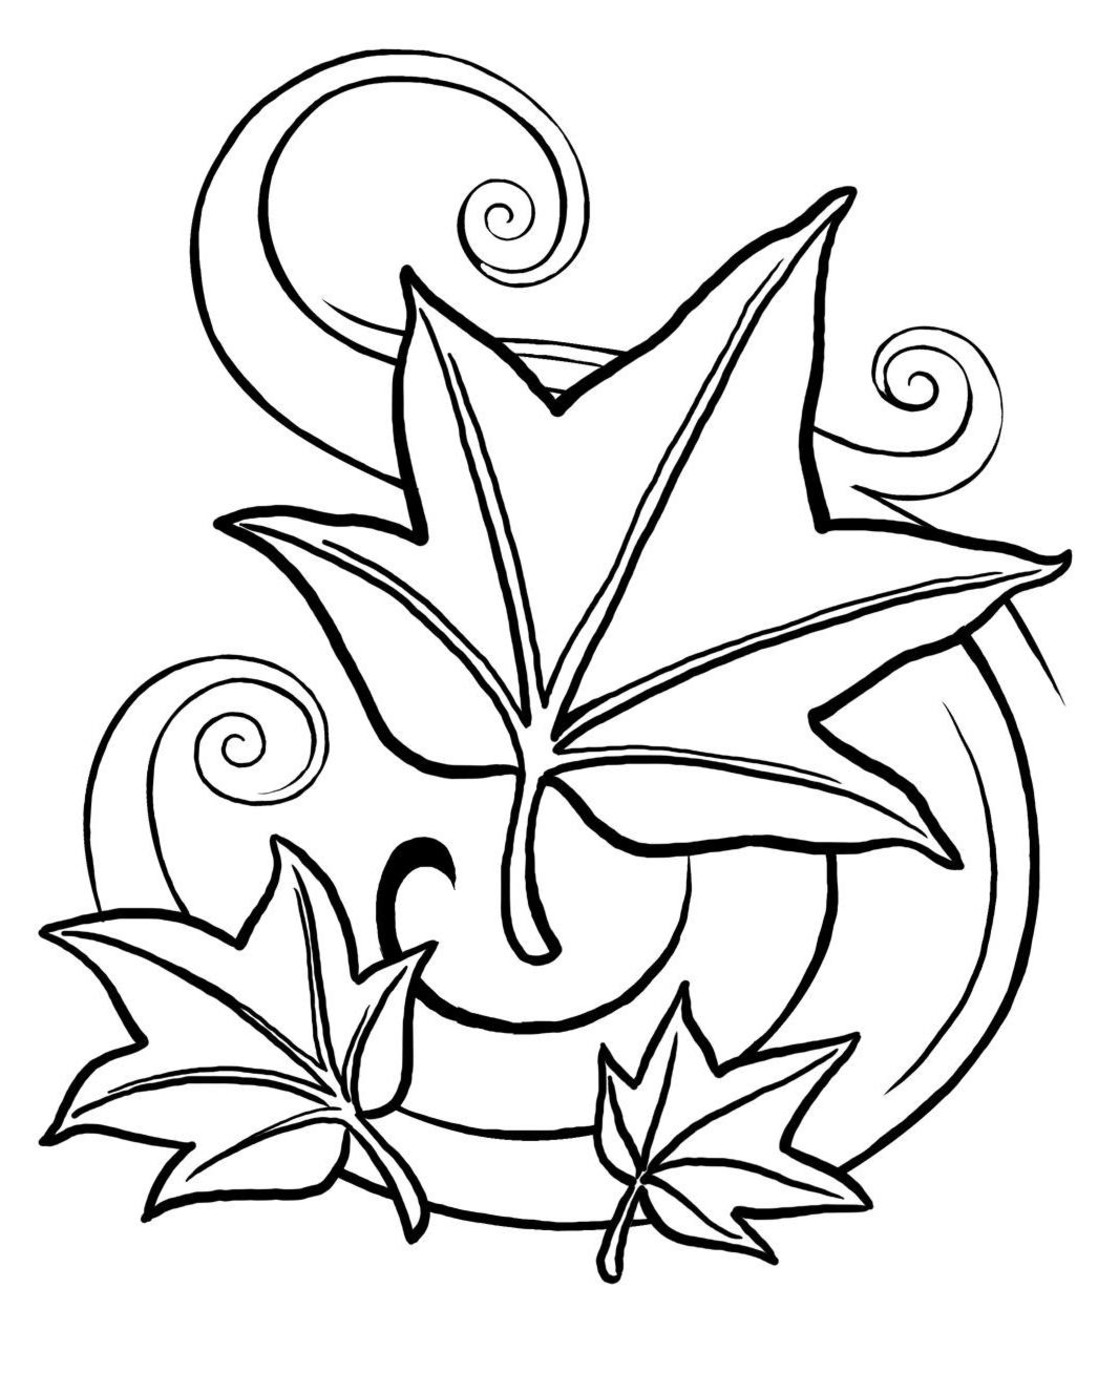 autumn leaves coloring pages autumn leaves and acorns coloring page free printable autumn pages coloring leaves